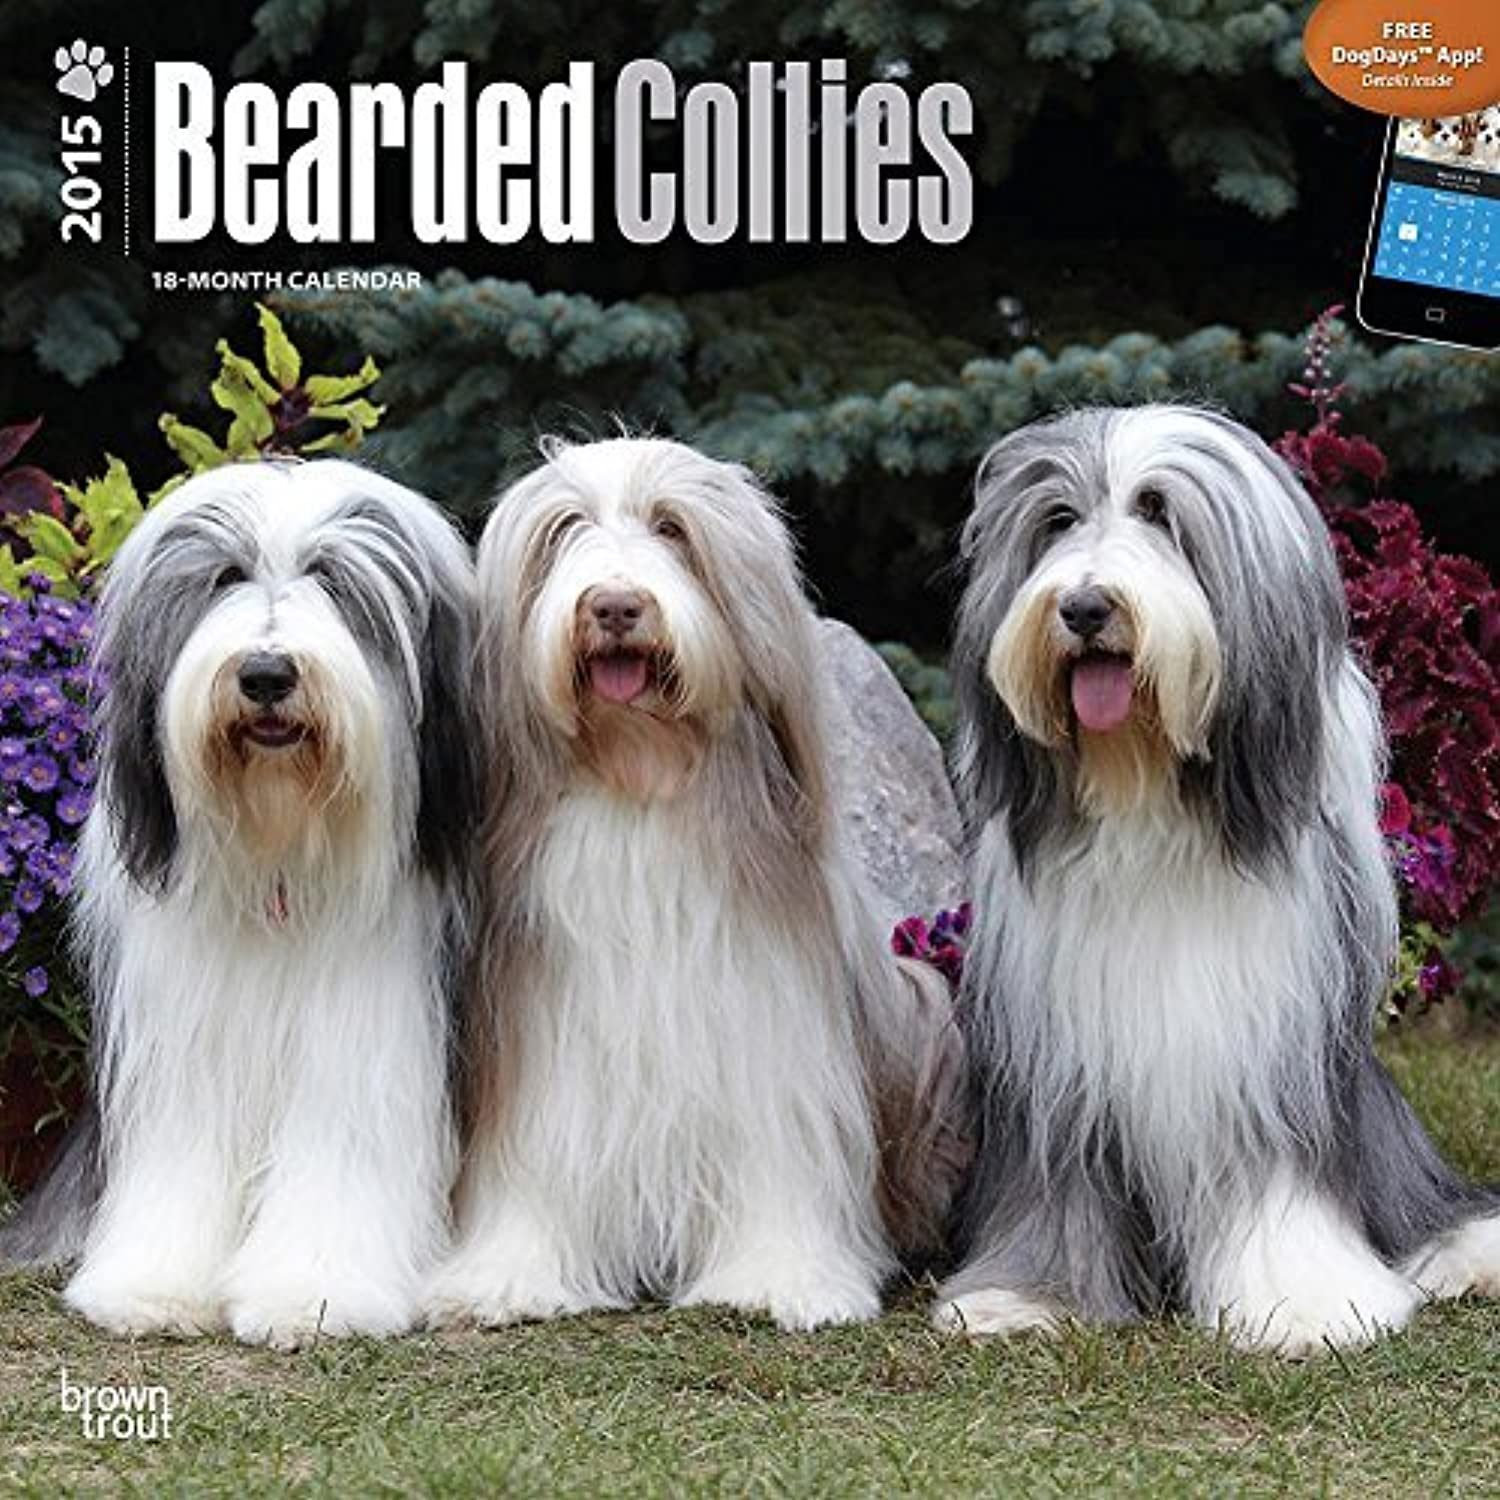 Bearded Collies 2015 Wall Calendar by 2015 Calendars Calendars Calendars B0141MM3ZM | Sale Düsseldorf